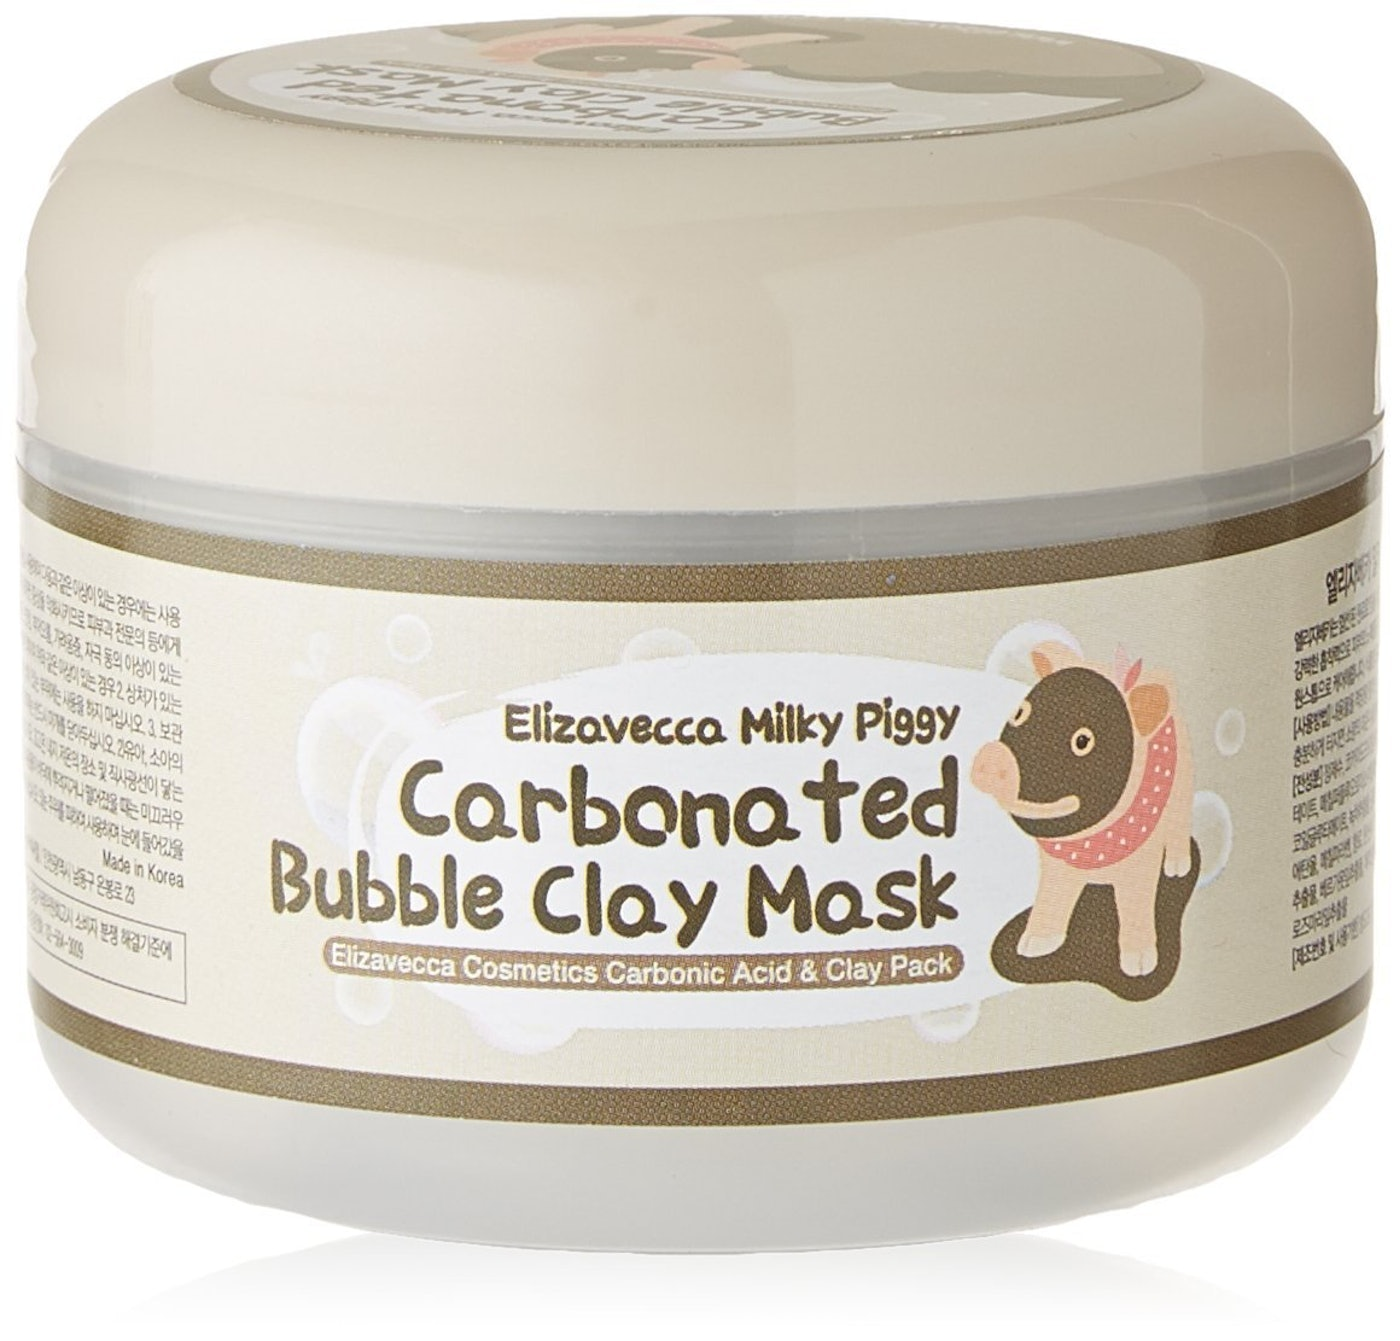 33 Cult Favorite Products On Amazon That Actually Live Up To The Hype Perfect White Clay 120 Gr Foaming Net